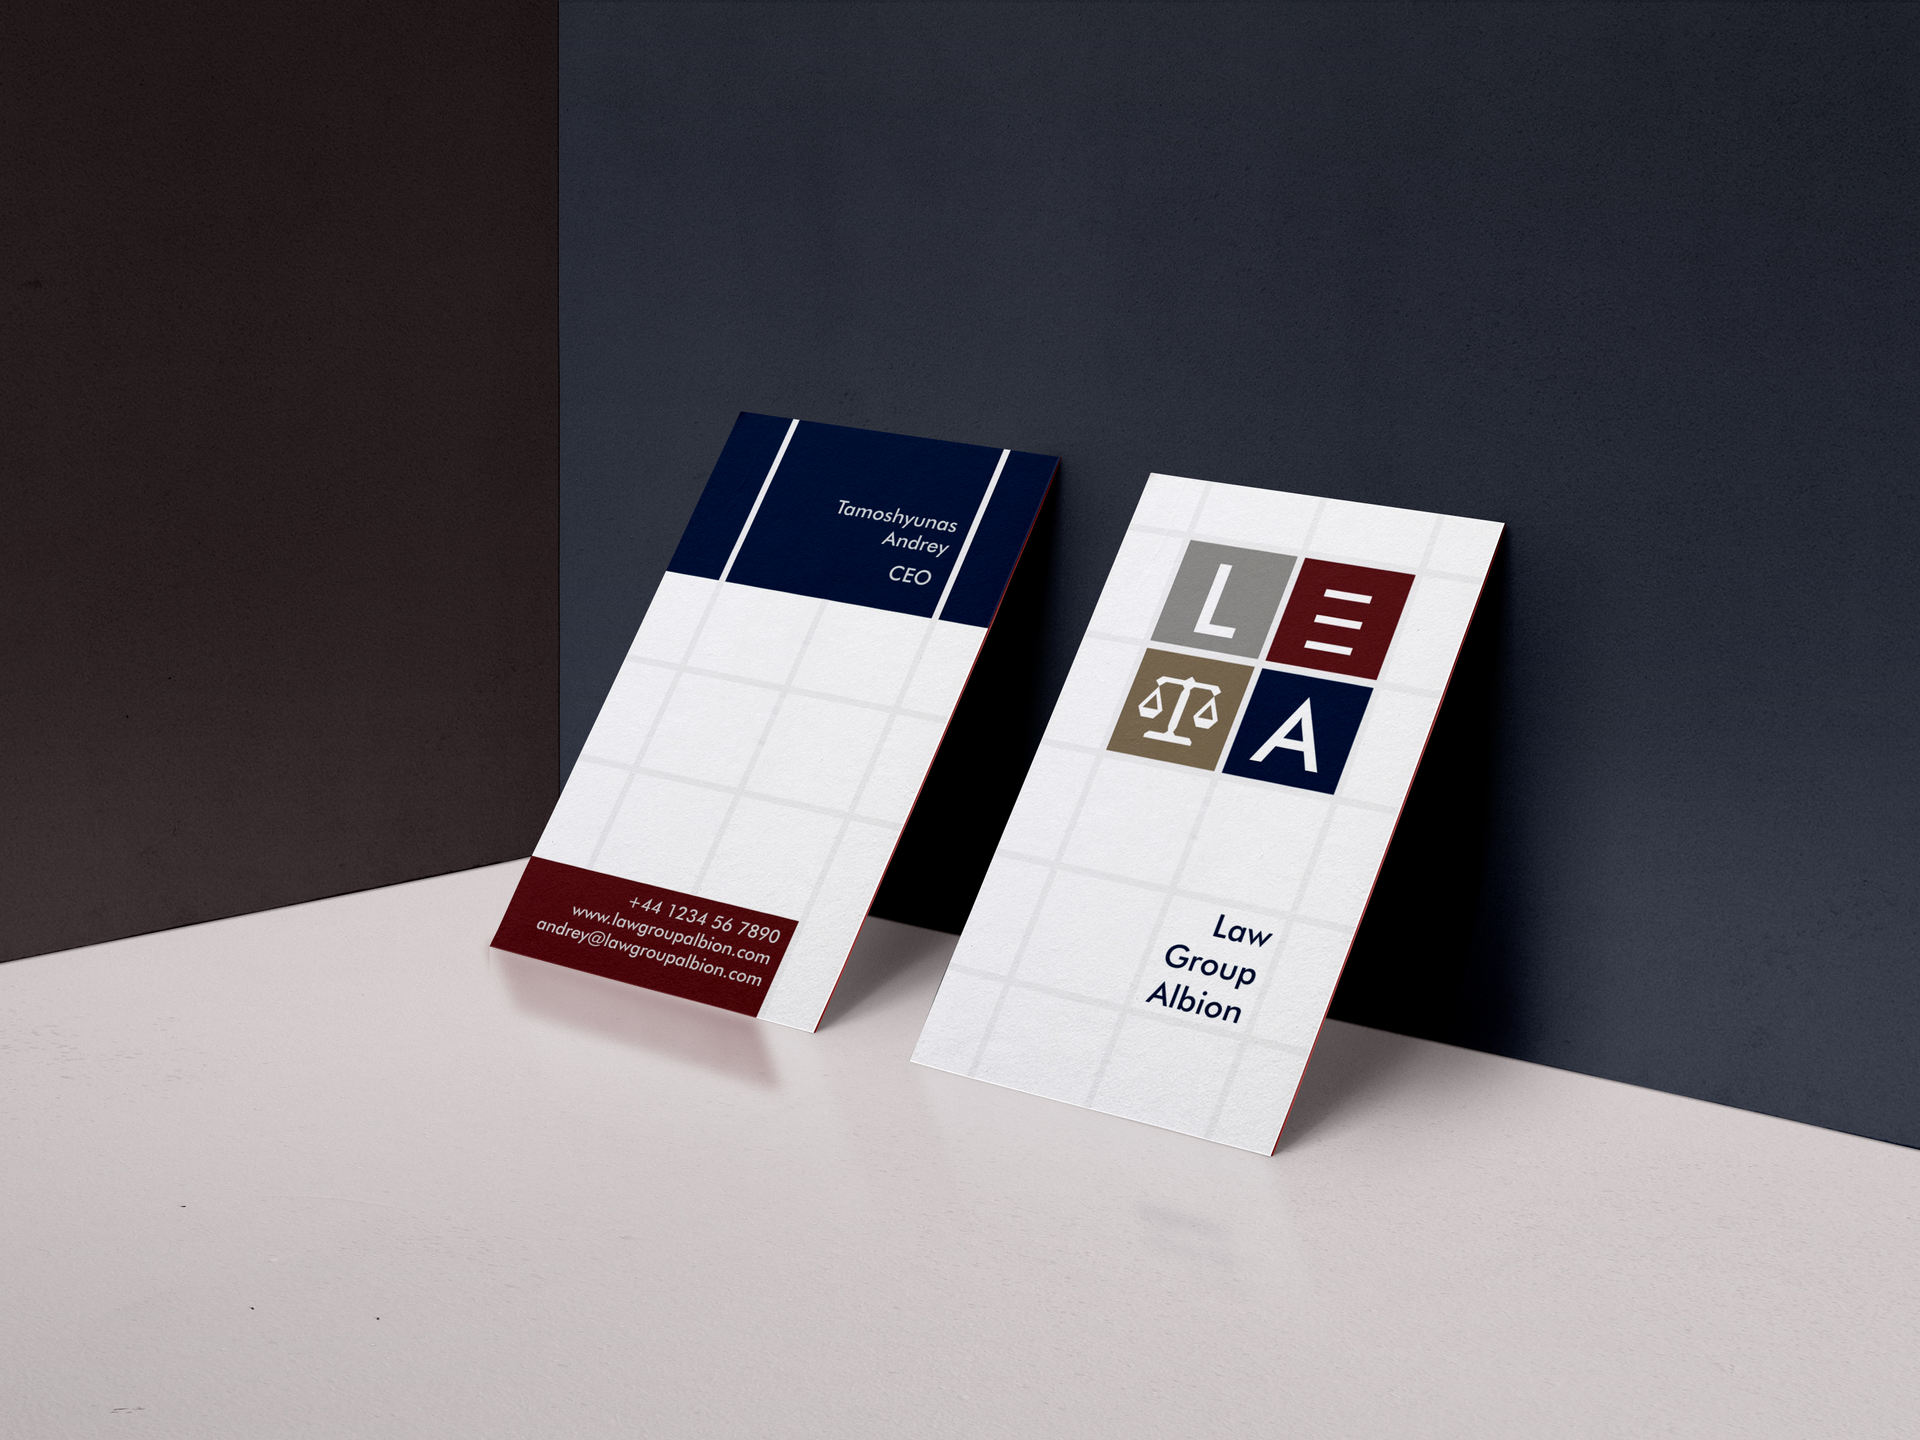 Law Group Albion business cards